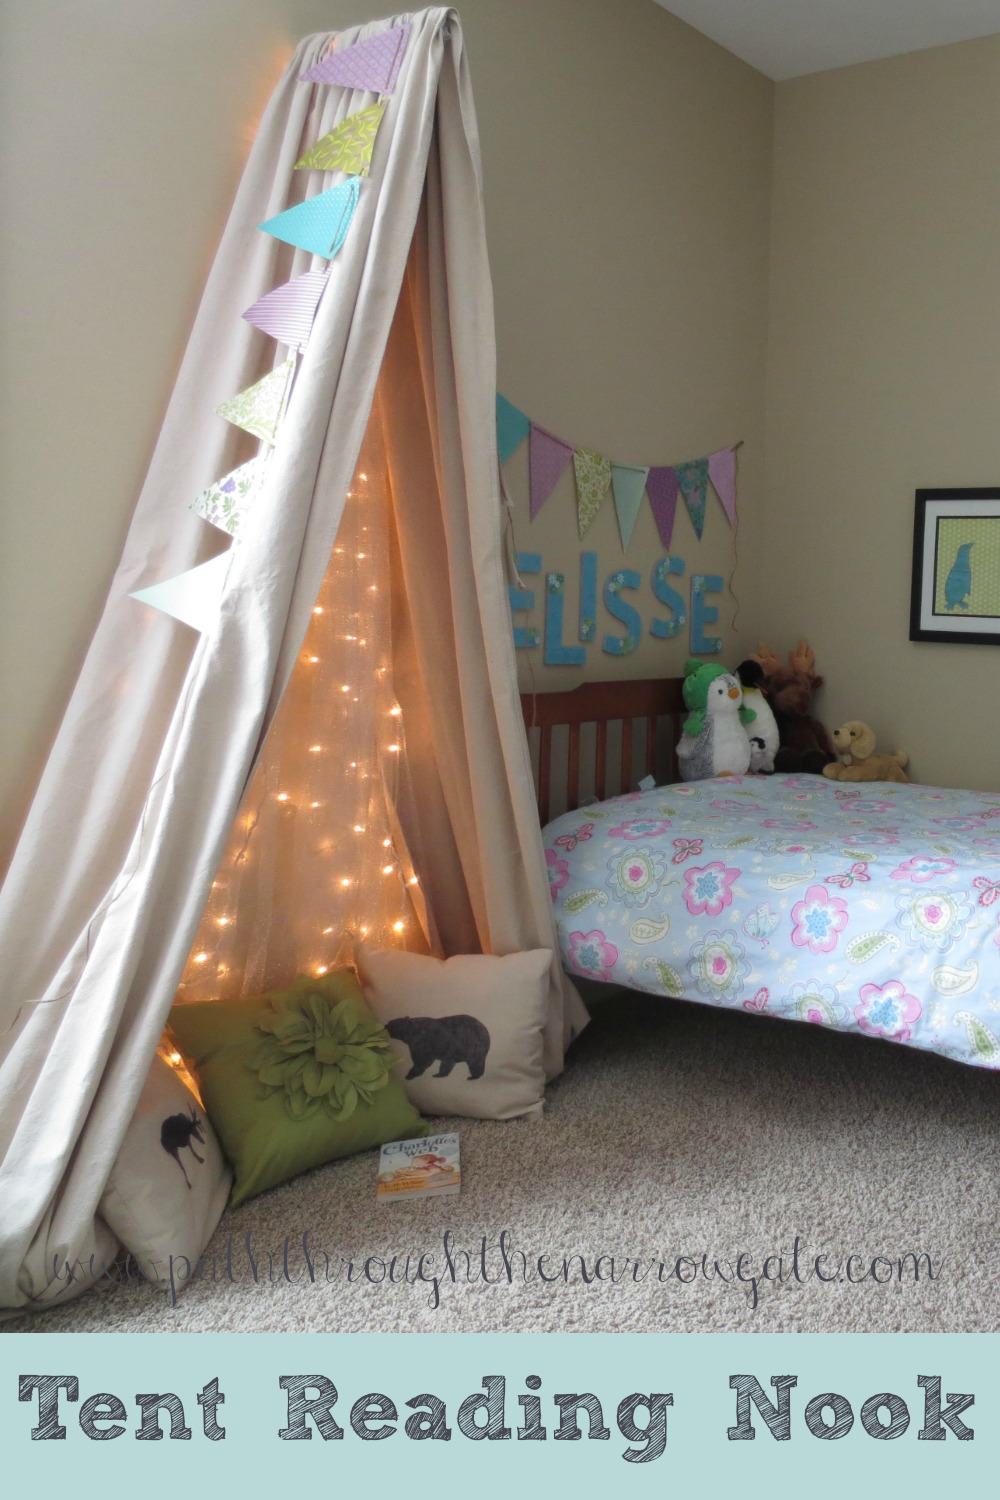 & Tent Reading Nook for a Small Space